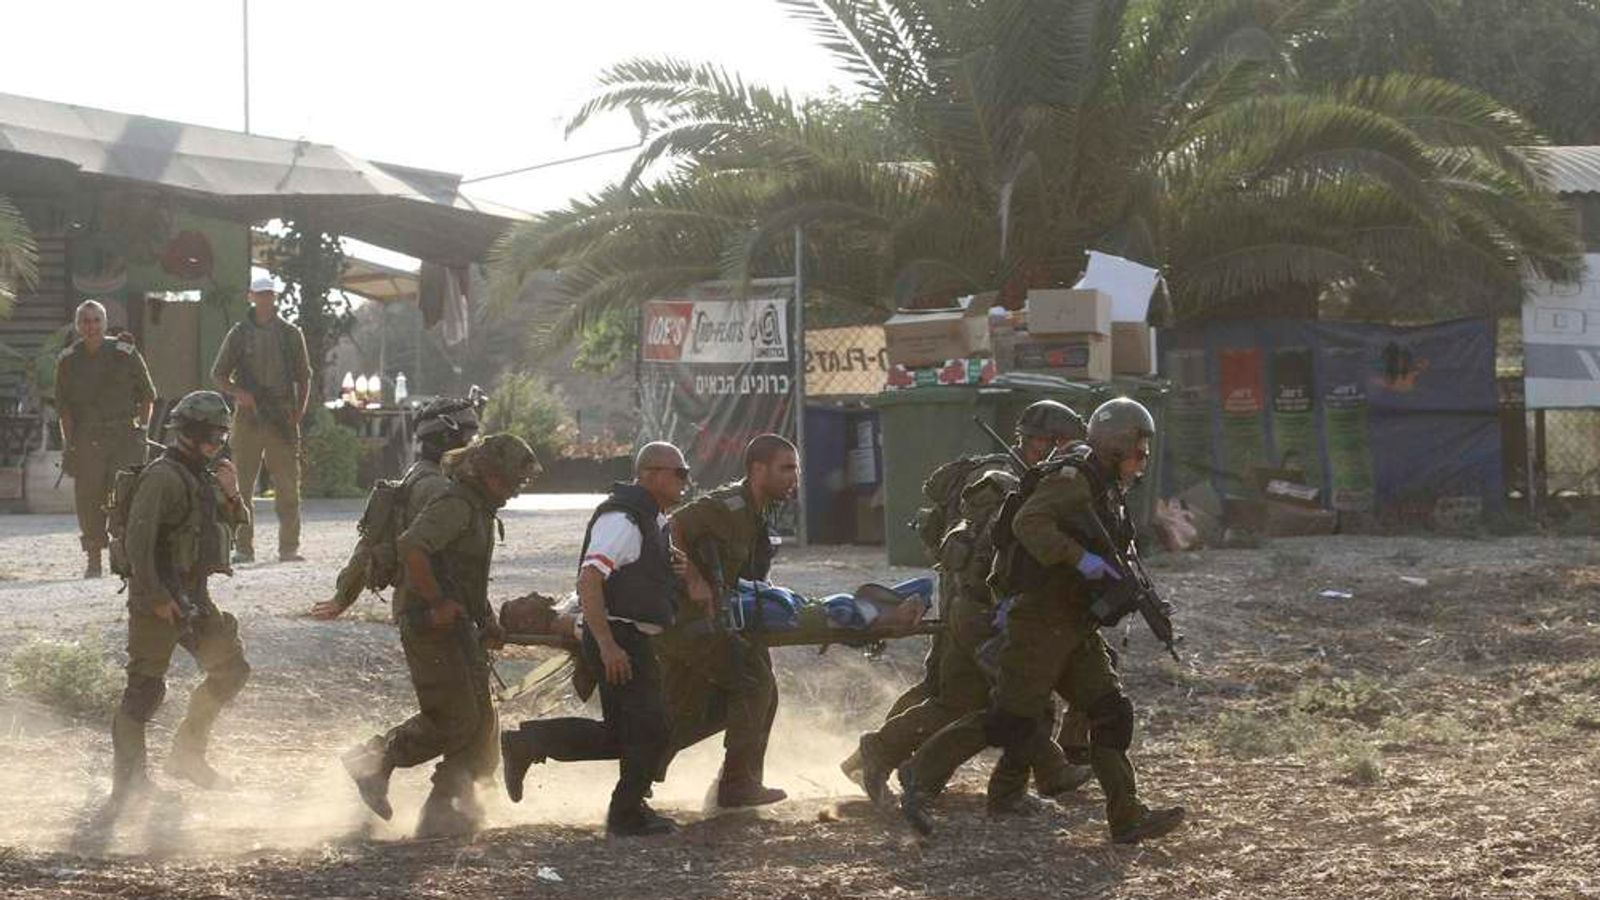 Israeli soldiers evacuate wounded comrade from the scene outside the central Gaza Strip